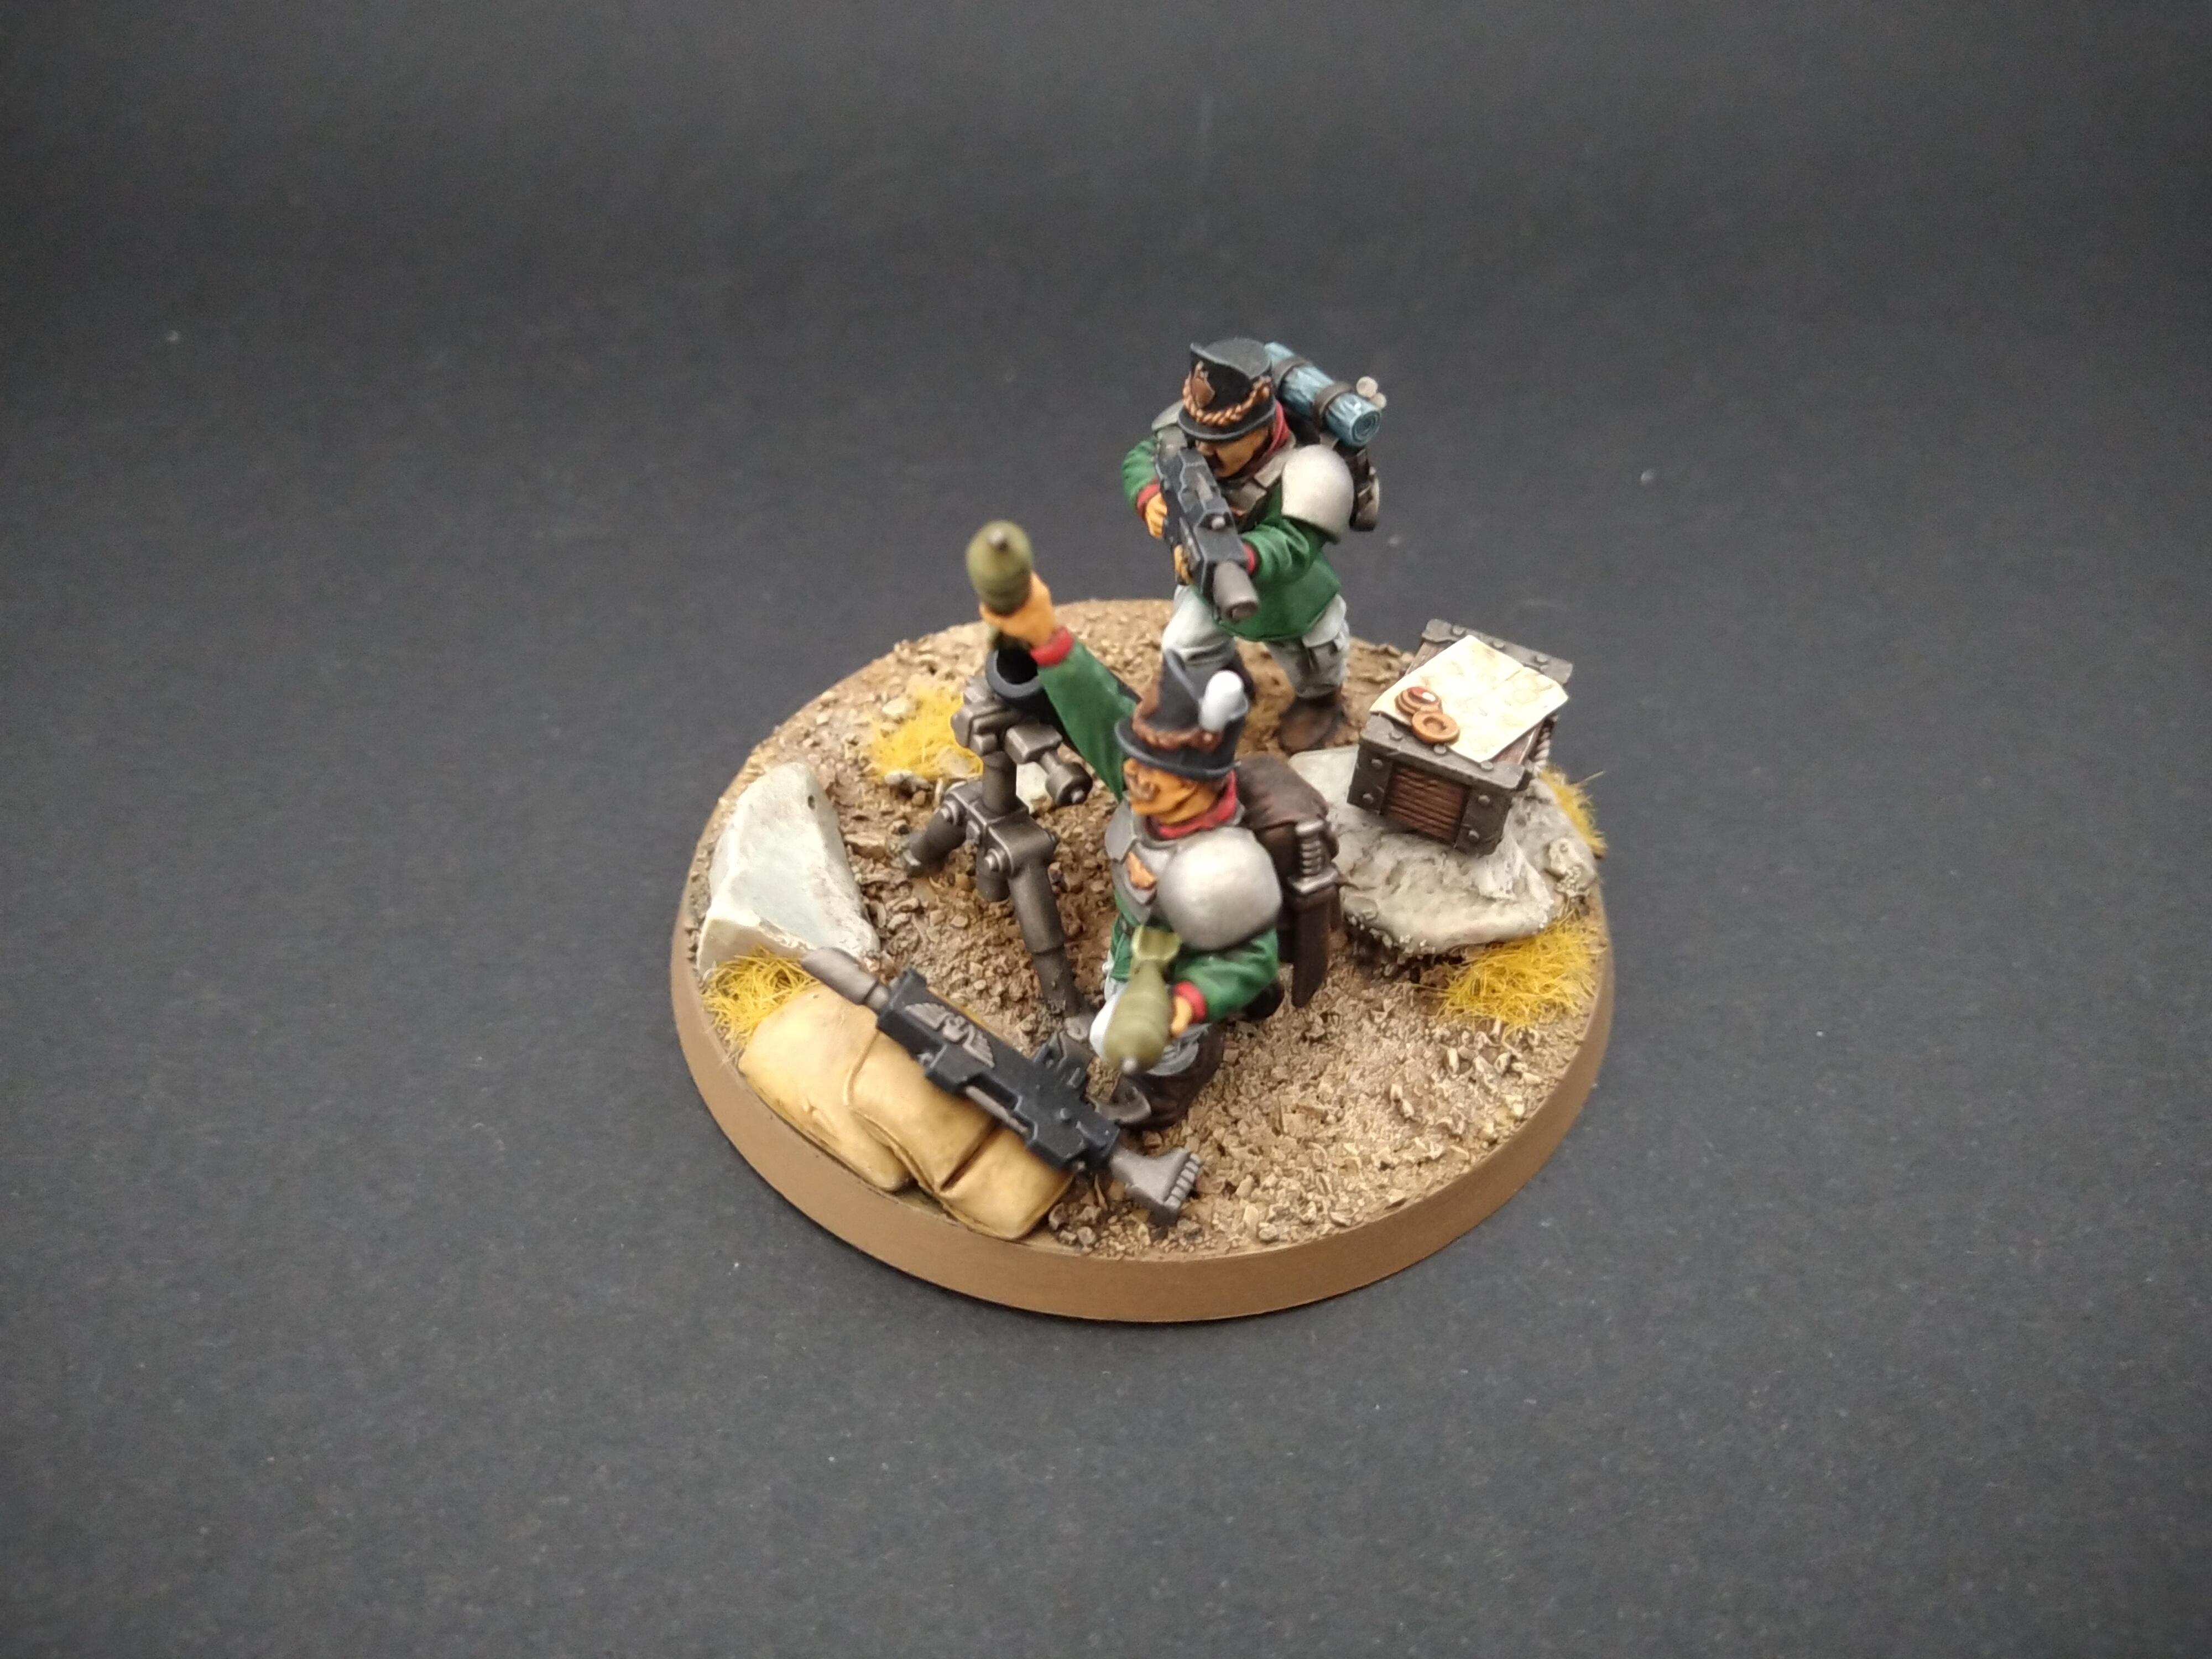 19th Century, All Troop Army, Astra Militarum, Imperial Guard, Mortar, Warhammer 40,000